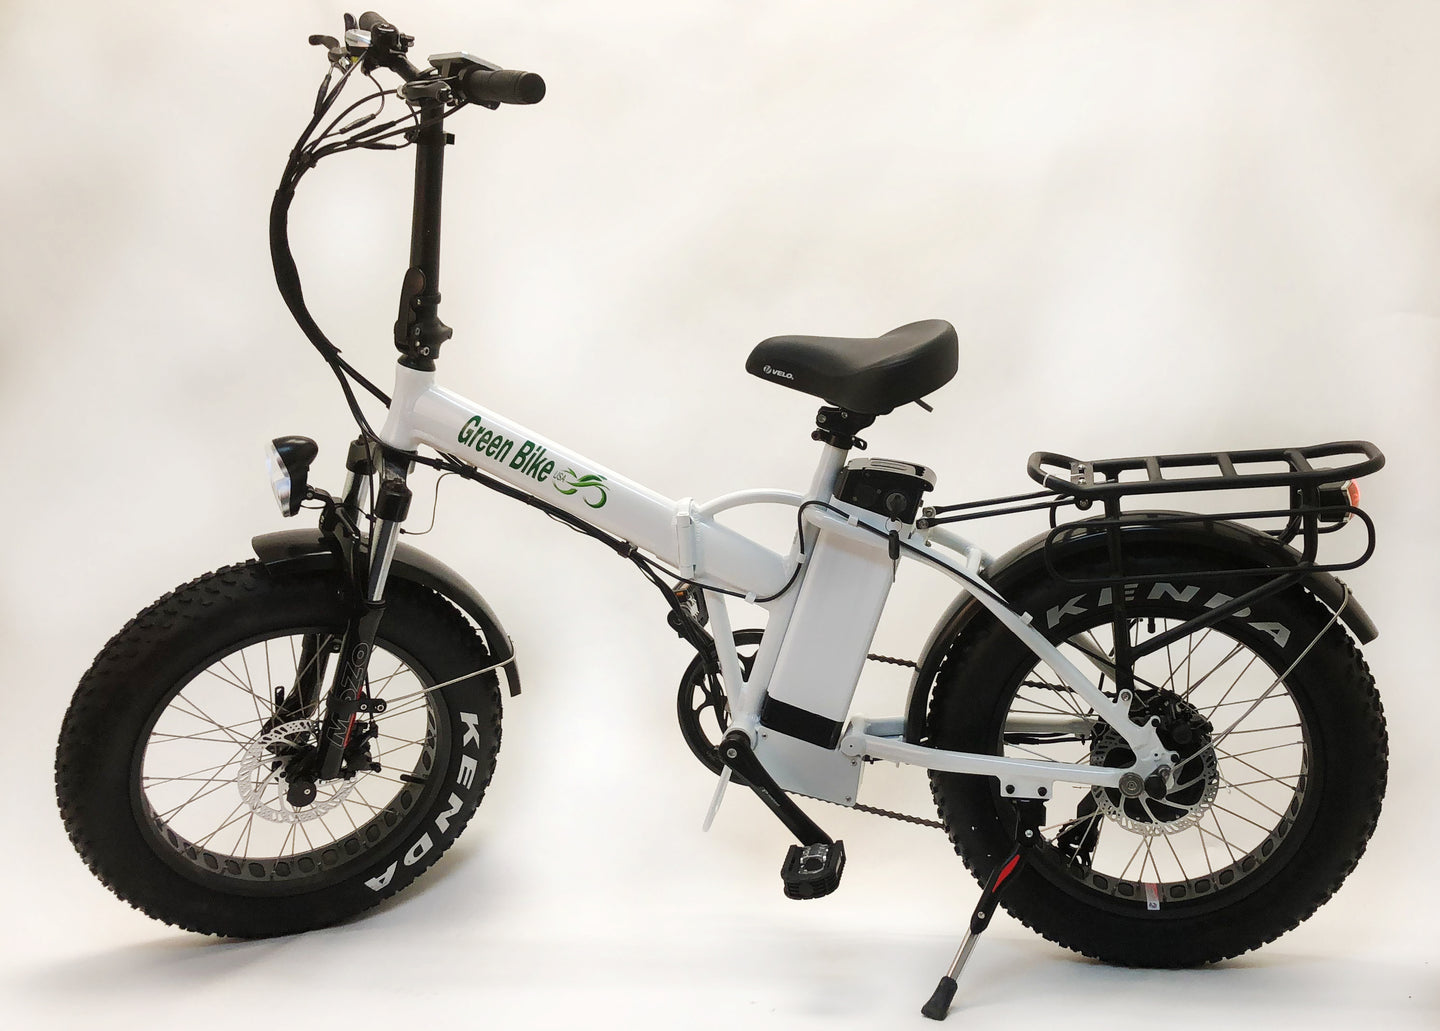 GB1 FAT TIRE - Simple, Reliable - Awesome Fun - Ride in Sand or Snow - Active Fun Electric Bicycles & Scooters